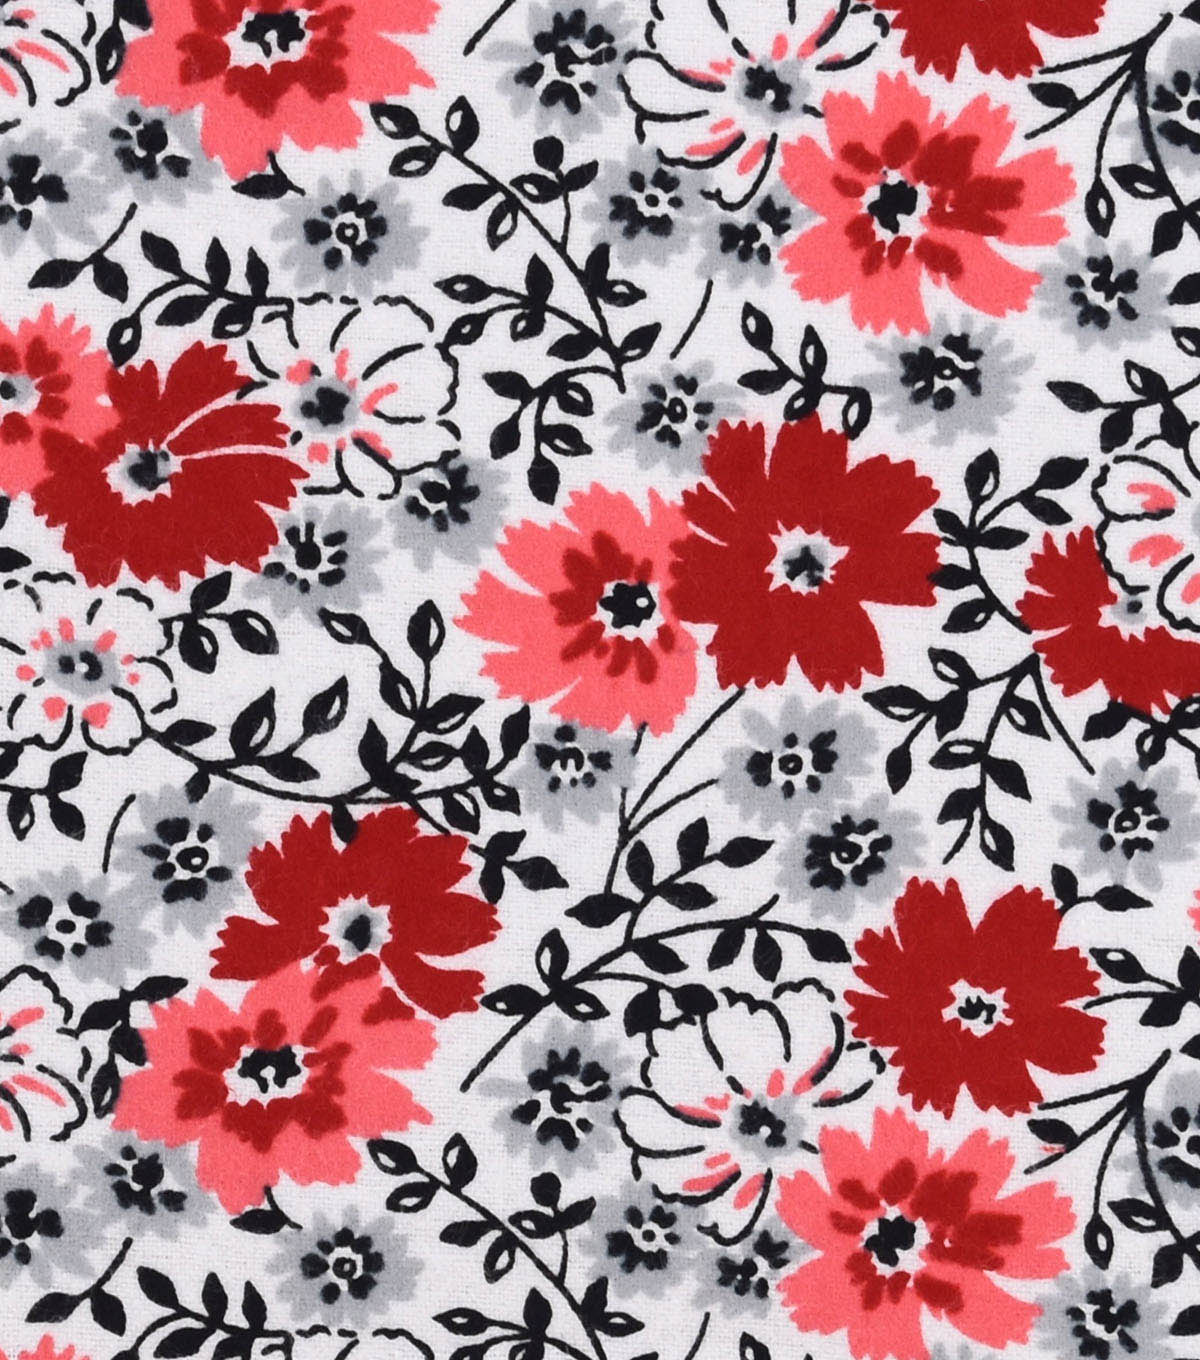 Snuggle Flannel Fabric 42\u0022-Red Gray Black Floral